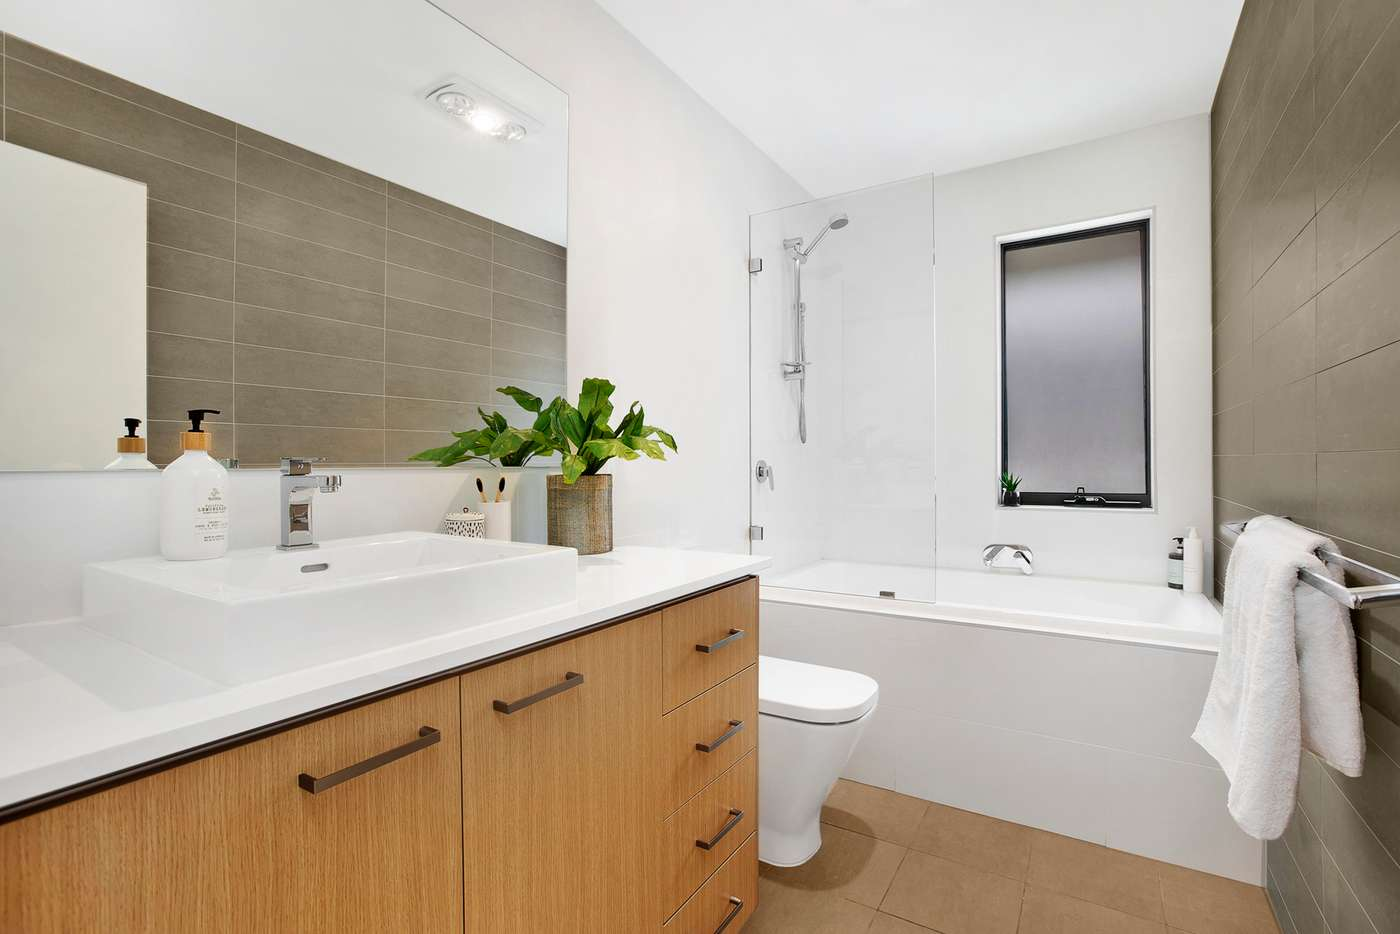 Sixth view of Homely house listing, 1351 Camden Valley Way, Leppington NSW 2179